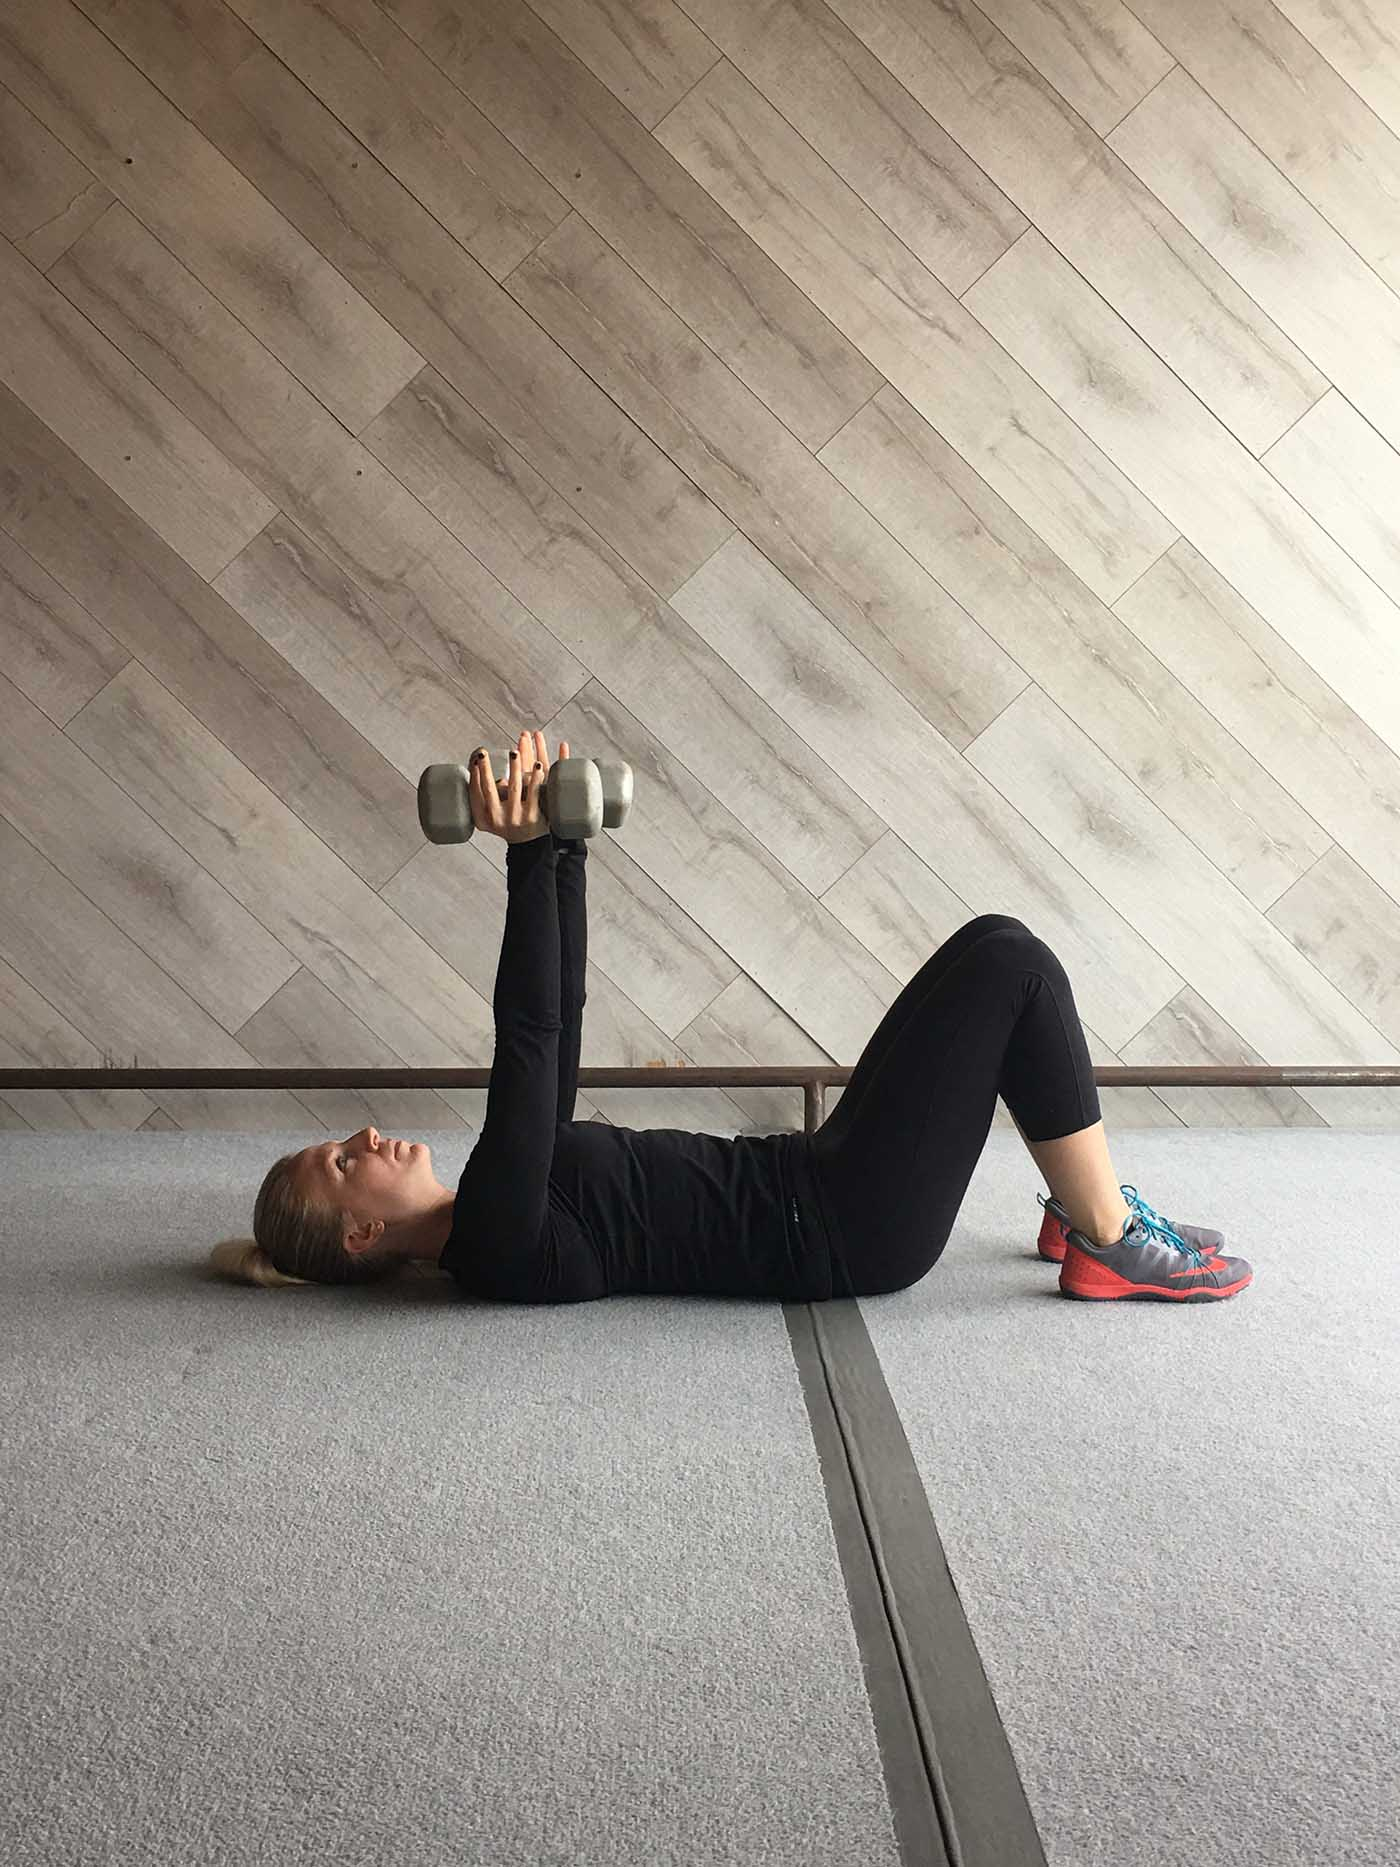 sweatlife_30-minute-workout_3